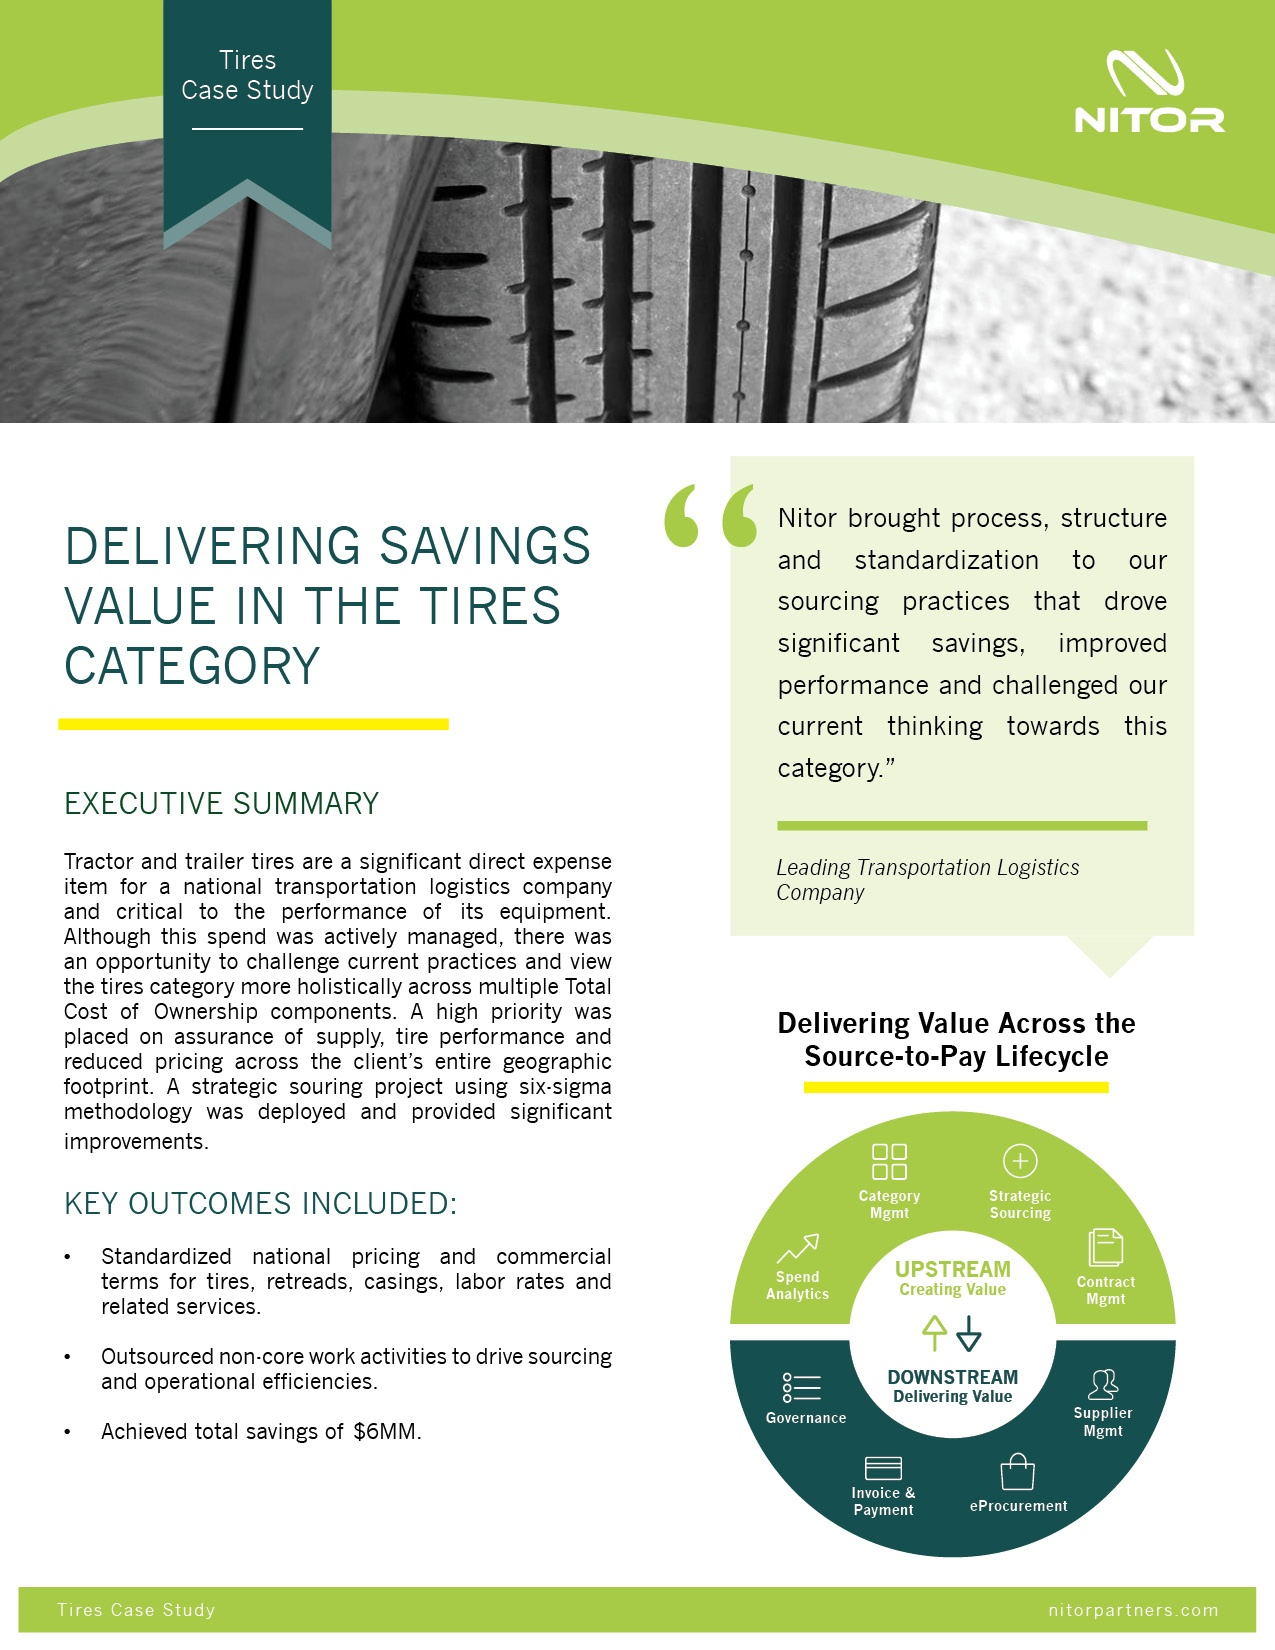 Nitor_CaseStudy_Tires.jpg